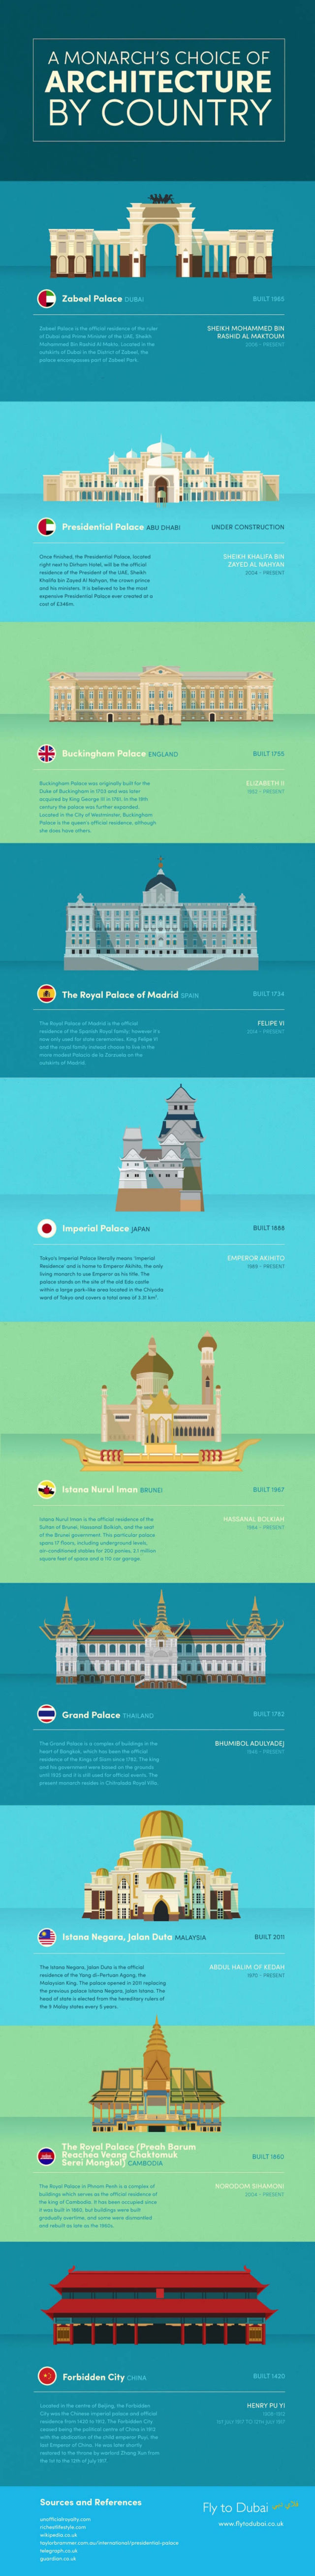 Monarch's Architecture by Country, infographic